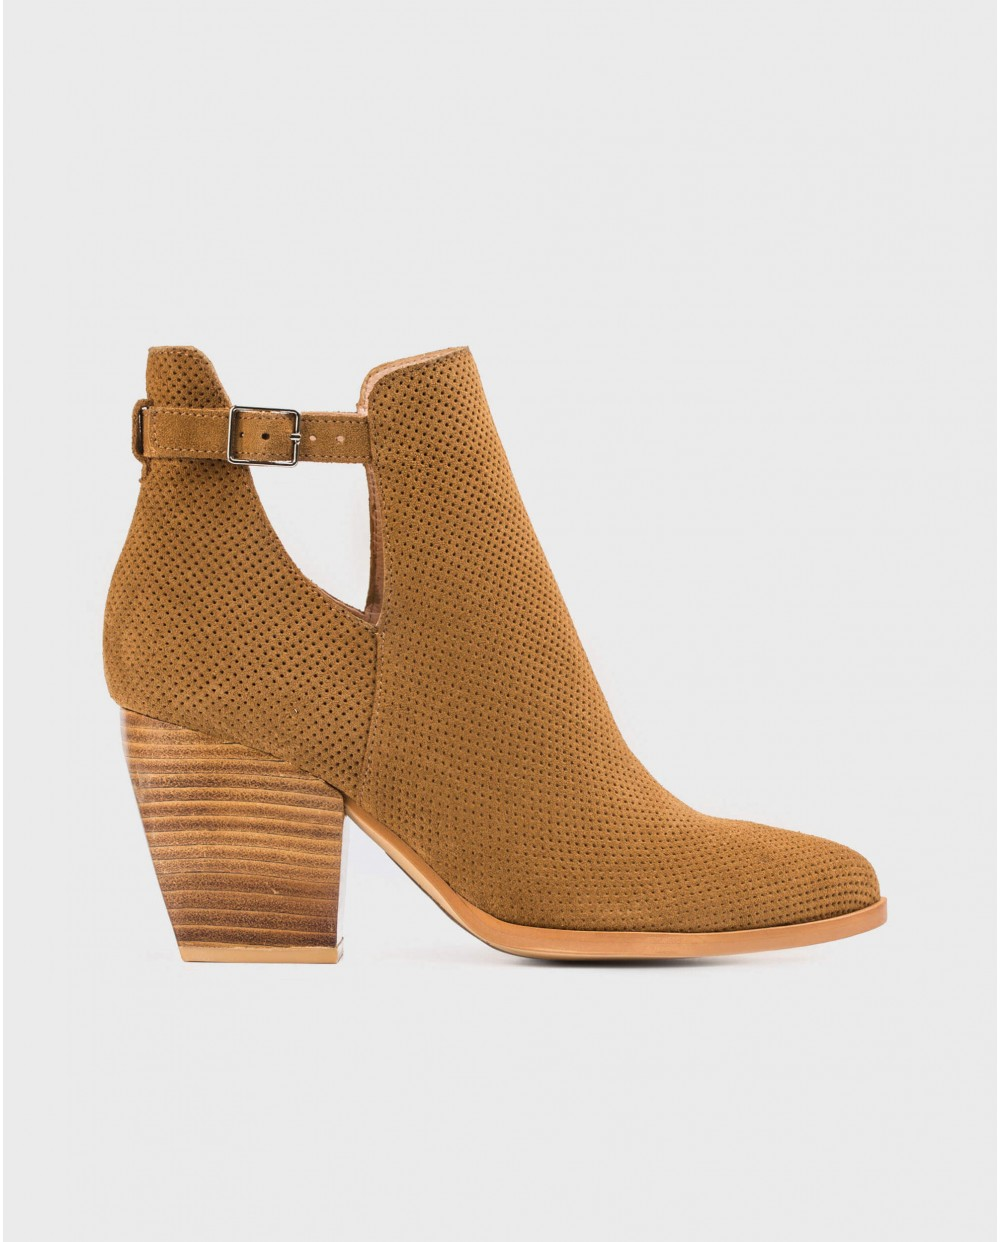 Wonders-Ankle Boots-Suede High heeled shoes